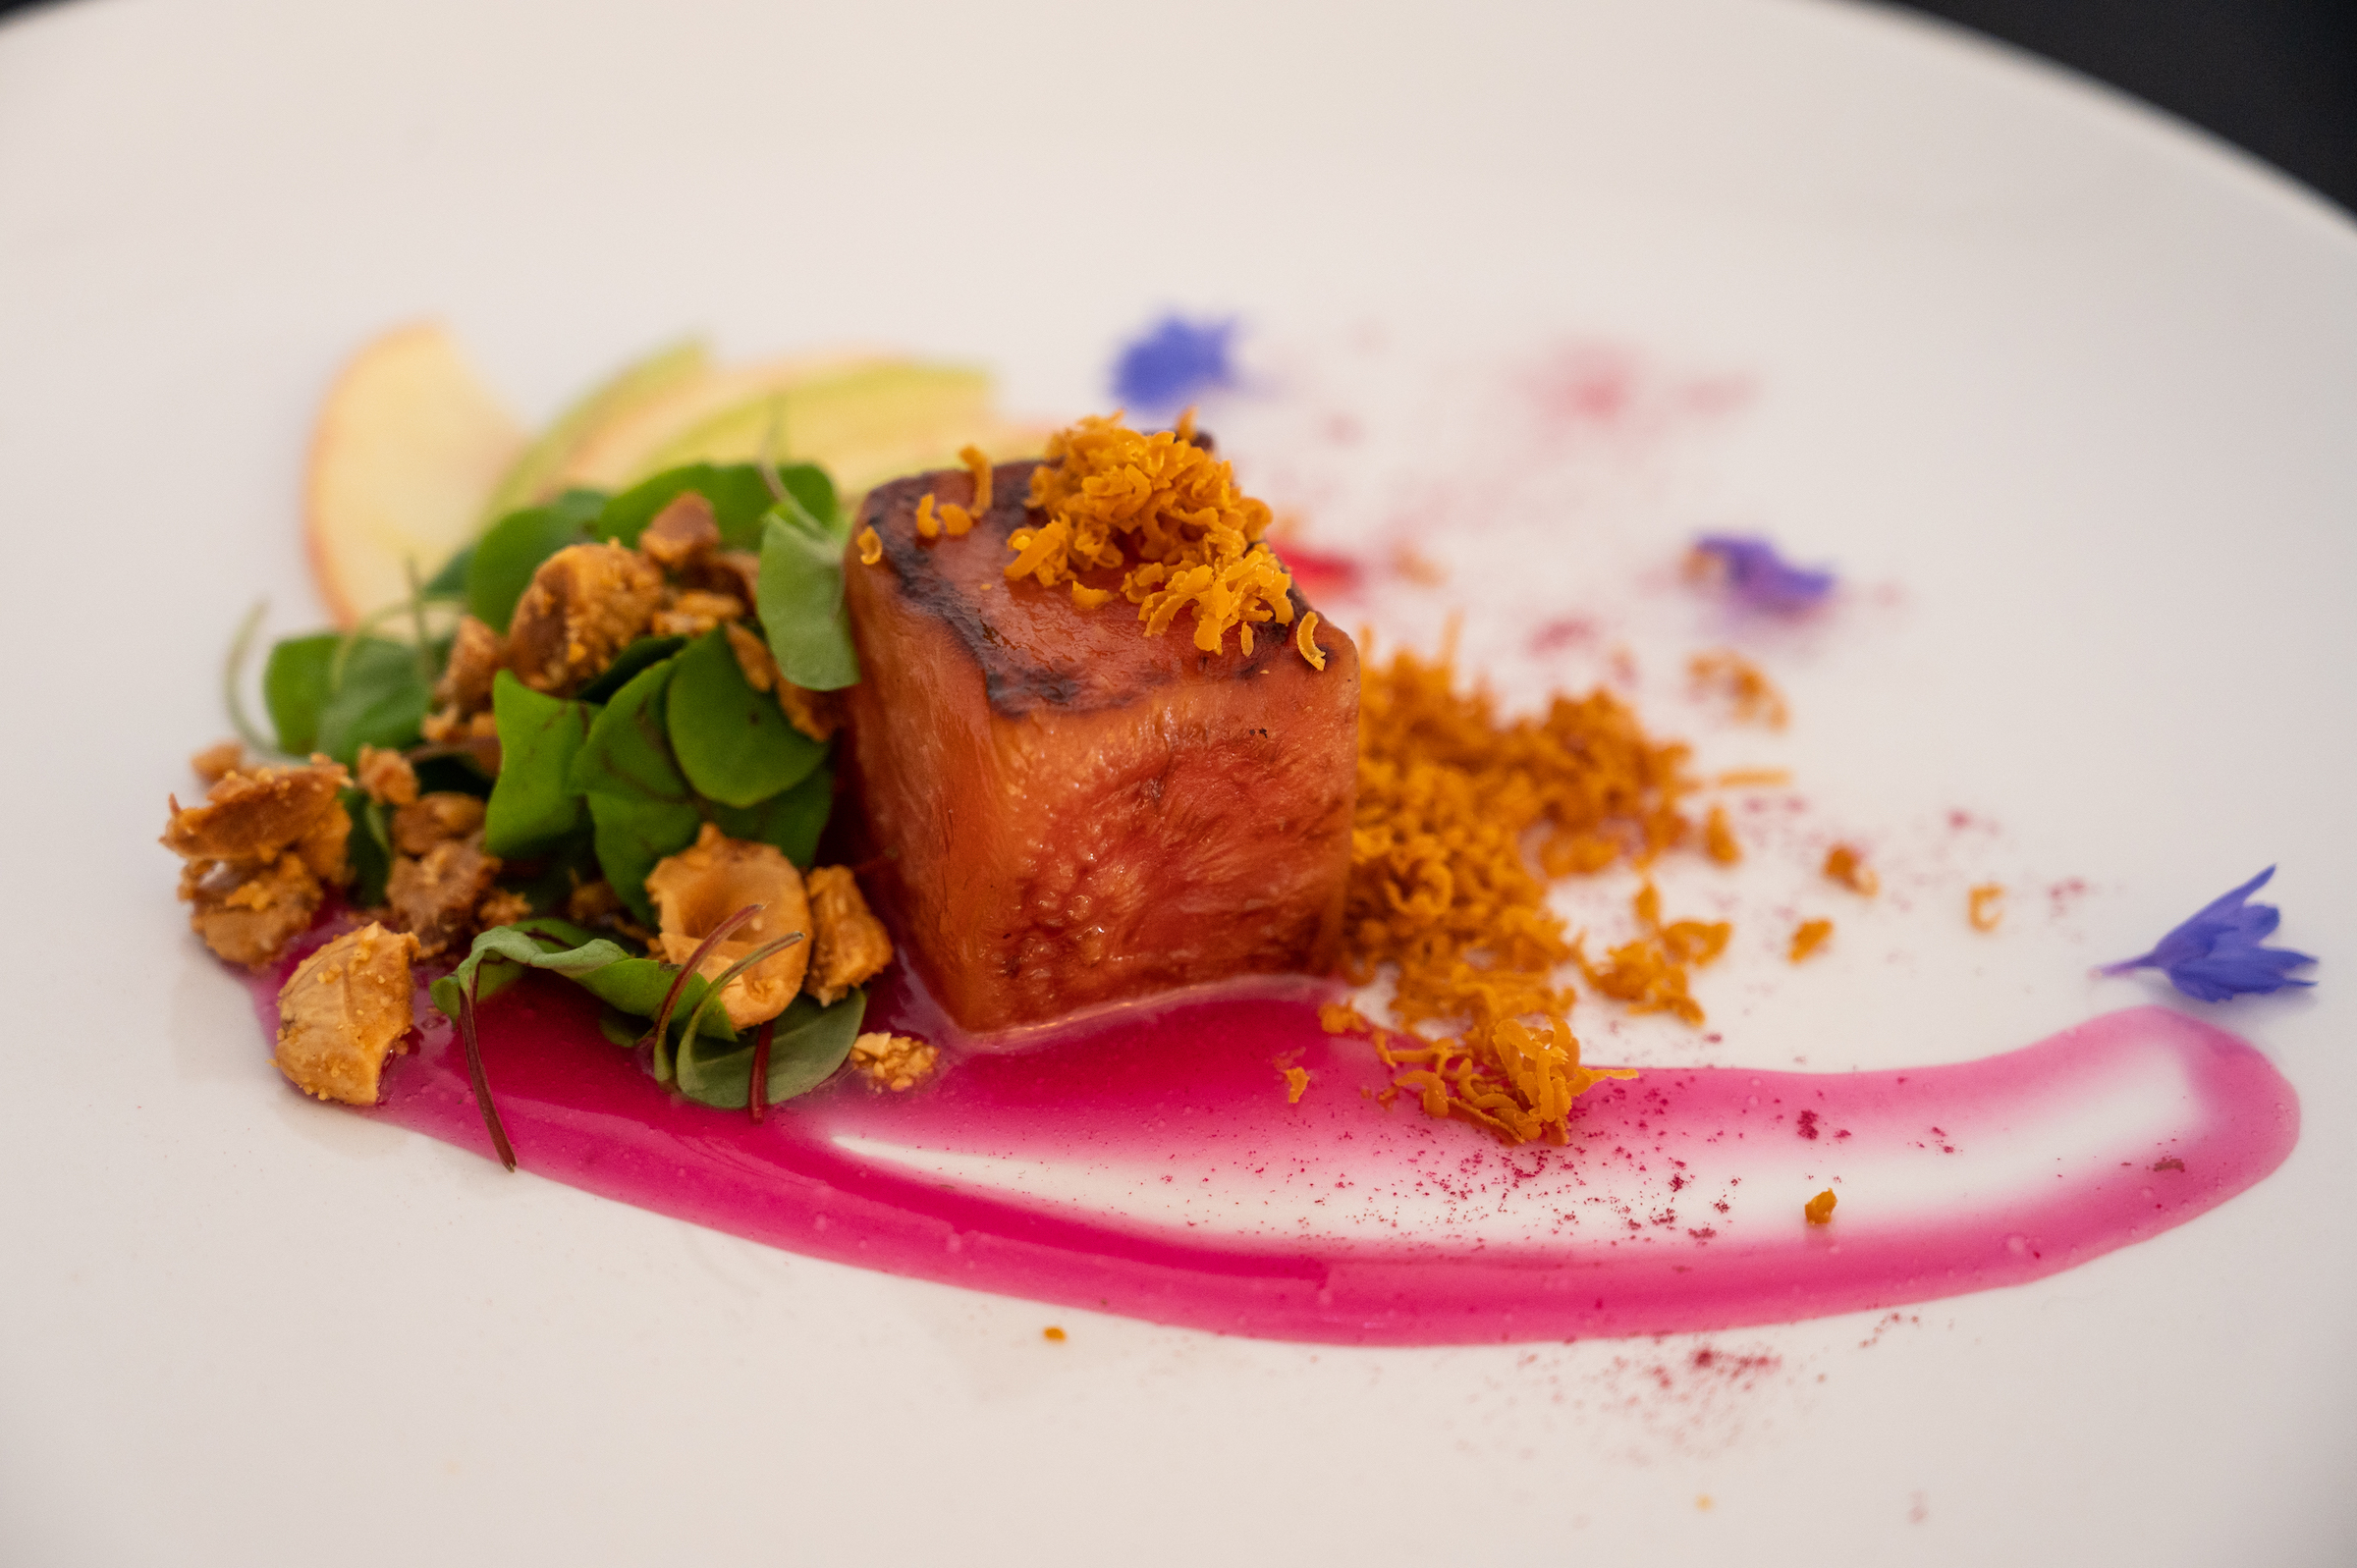 Roasted candy stripe beet salad with caramelized goat cheese and brown butter almonds